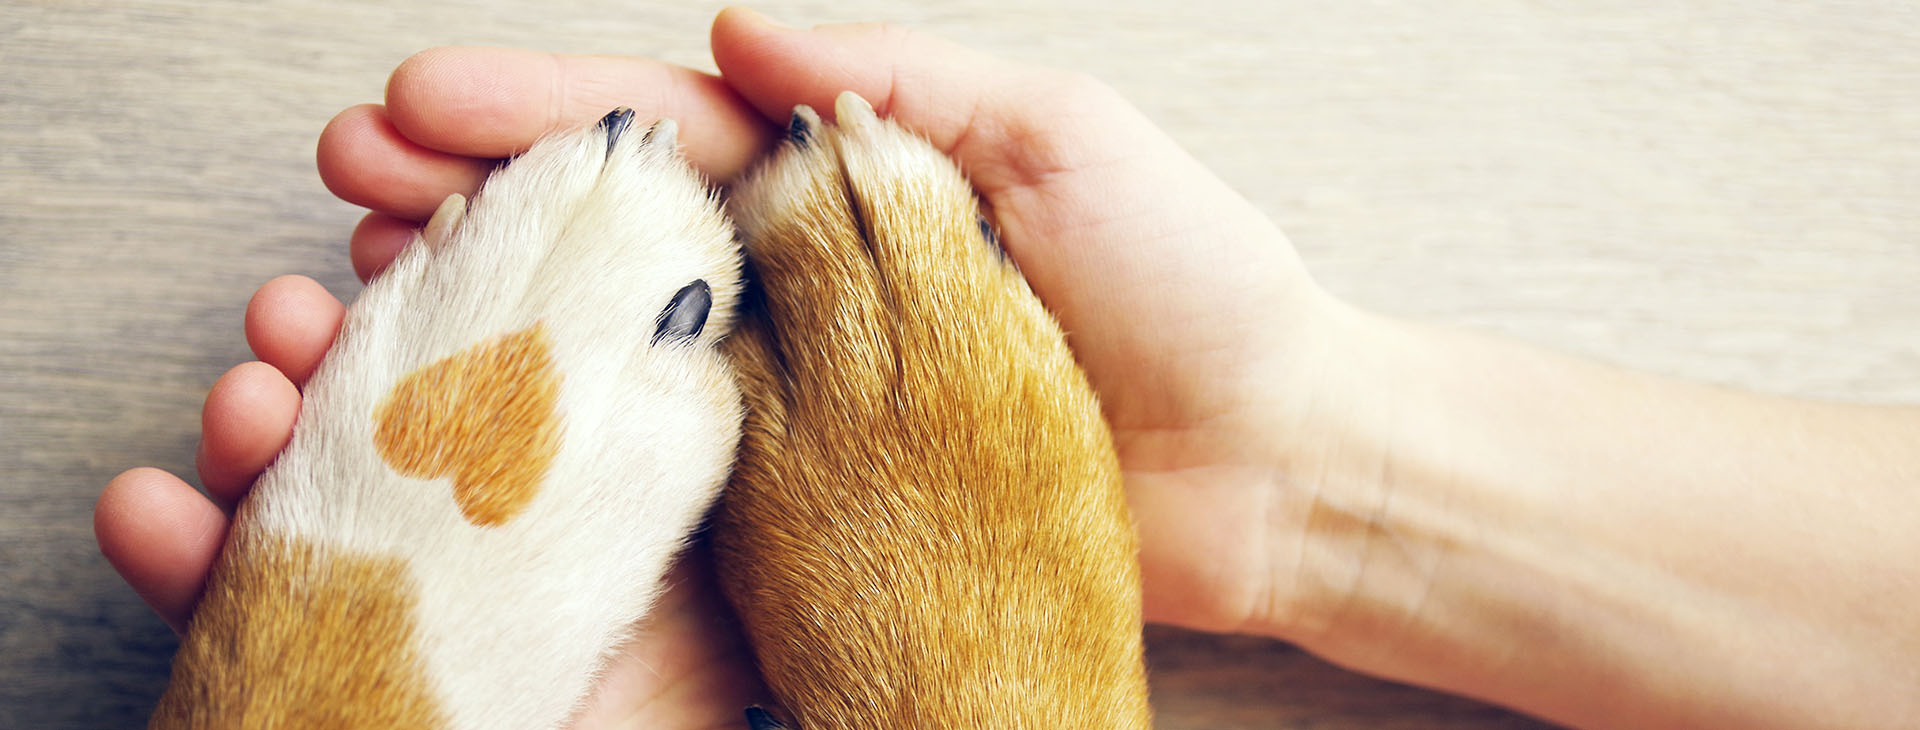 human hands holding dog paws with heart on fur